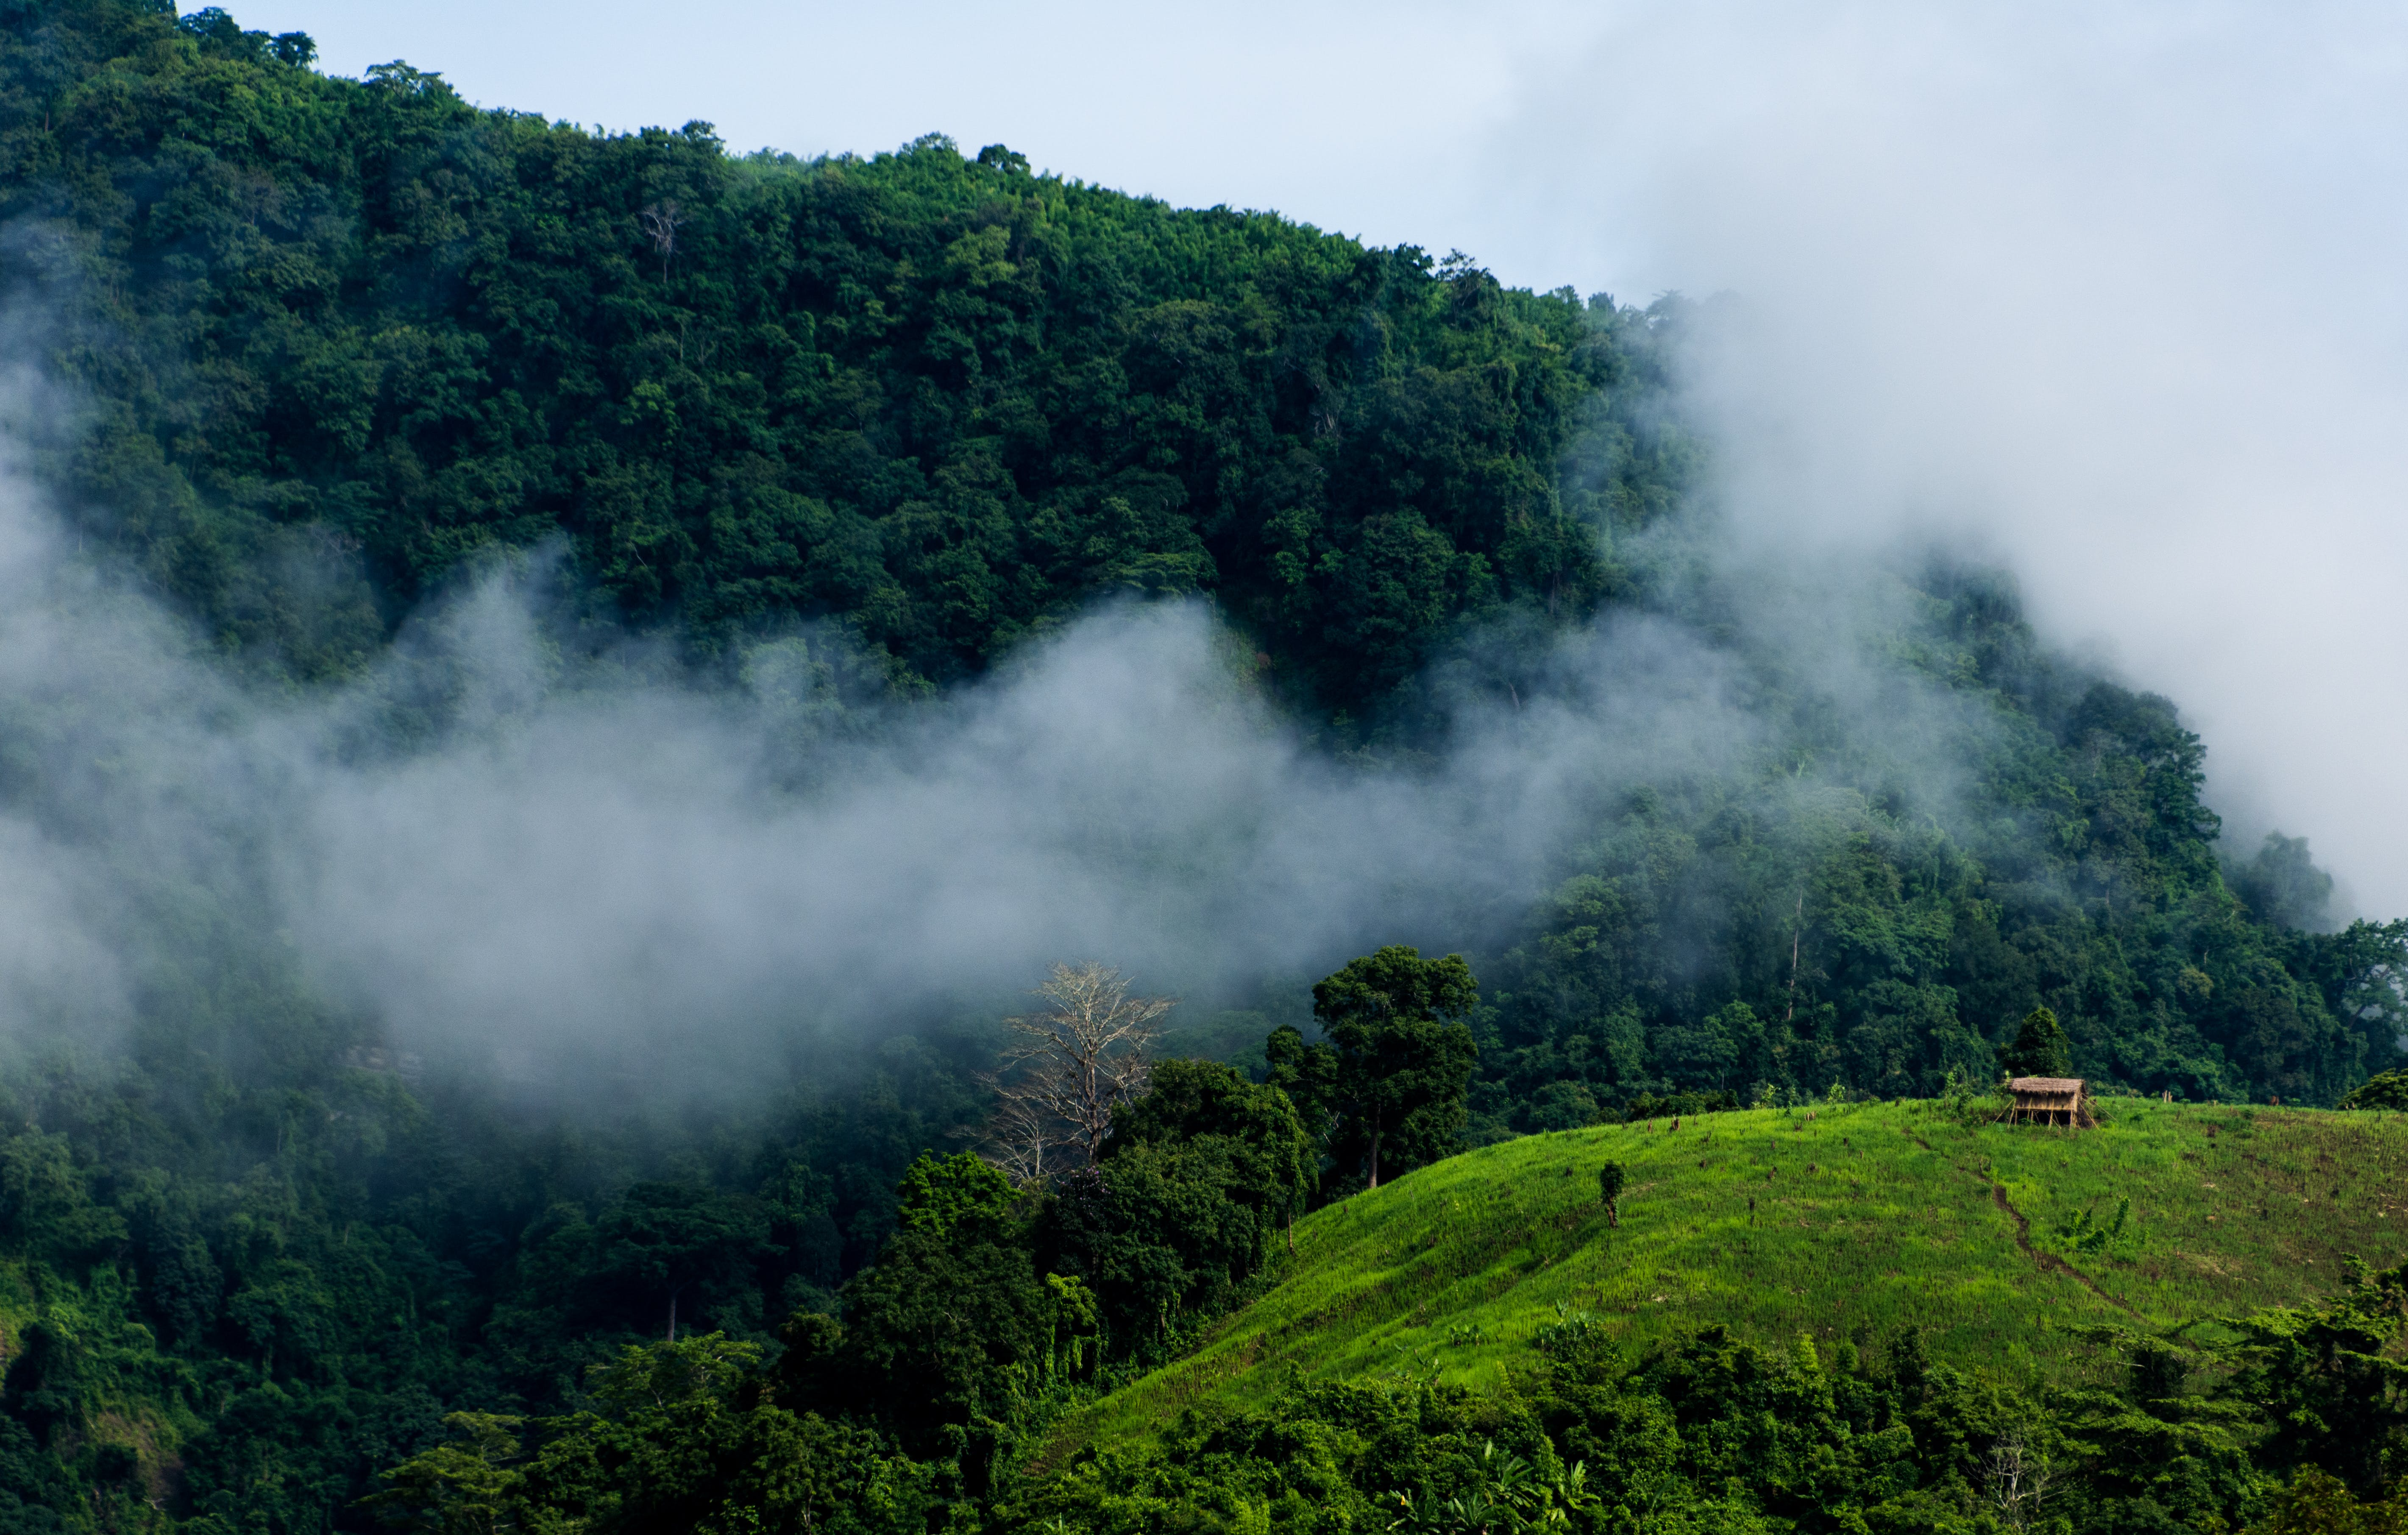 Free stock photo of clouds, hilly, nature photography, Jum_House